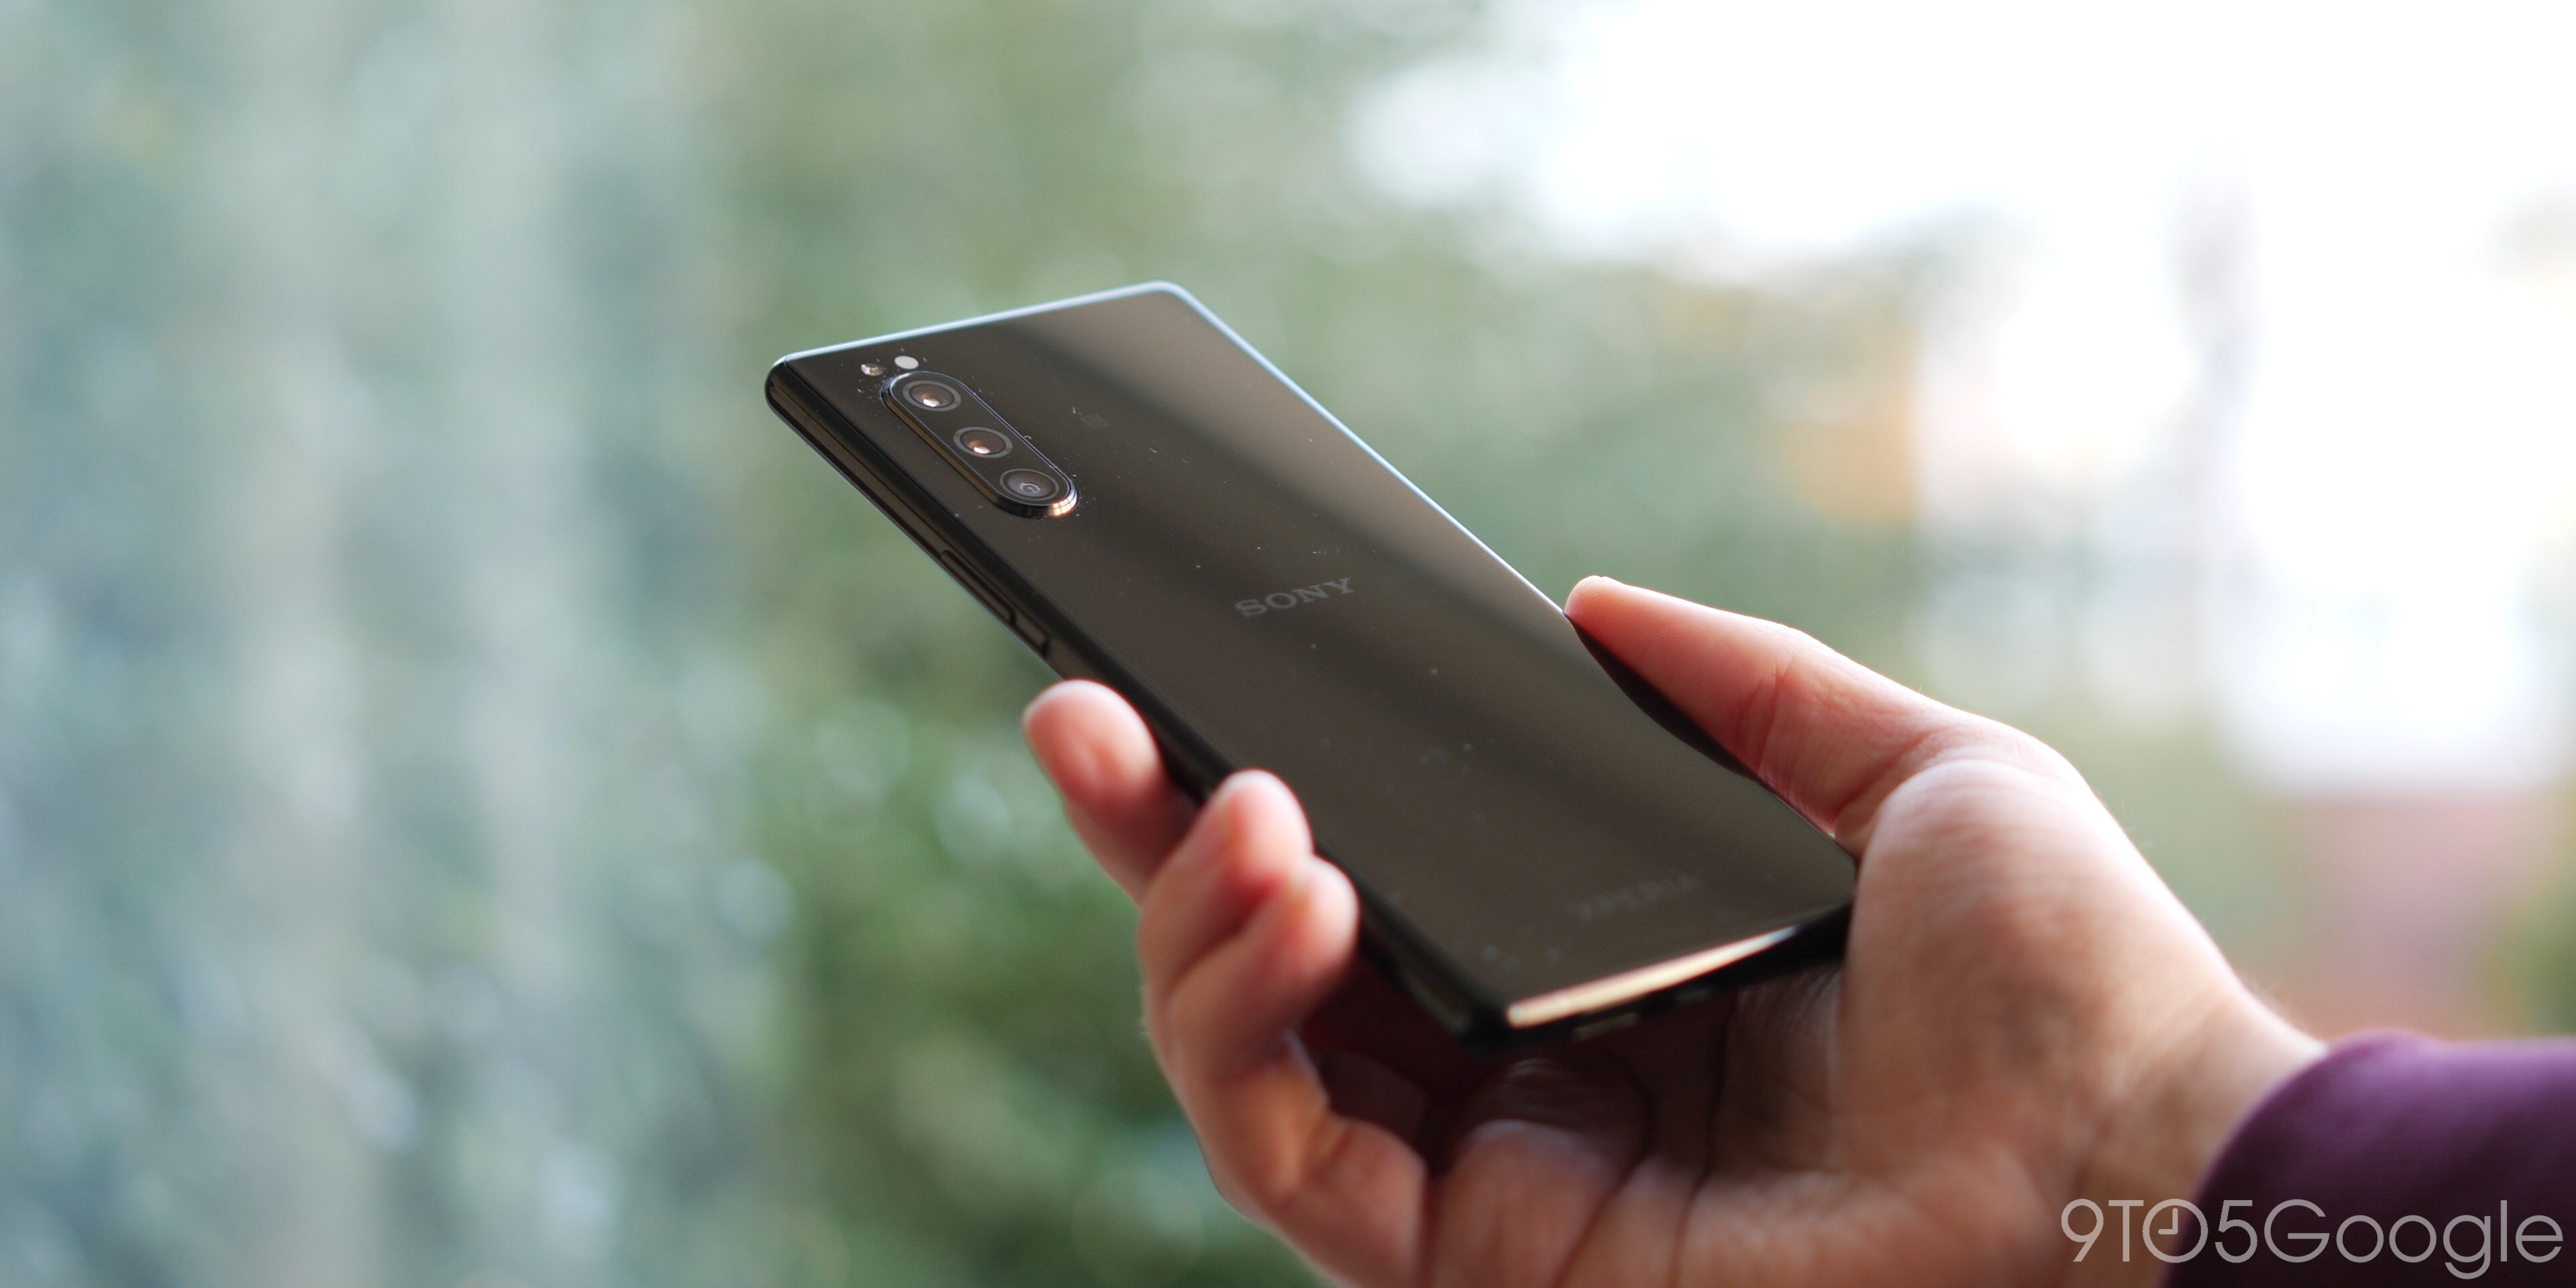 Sony Xperia 5 review: The not-so-compact, 'compact' phone [Video] - 9to5Google